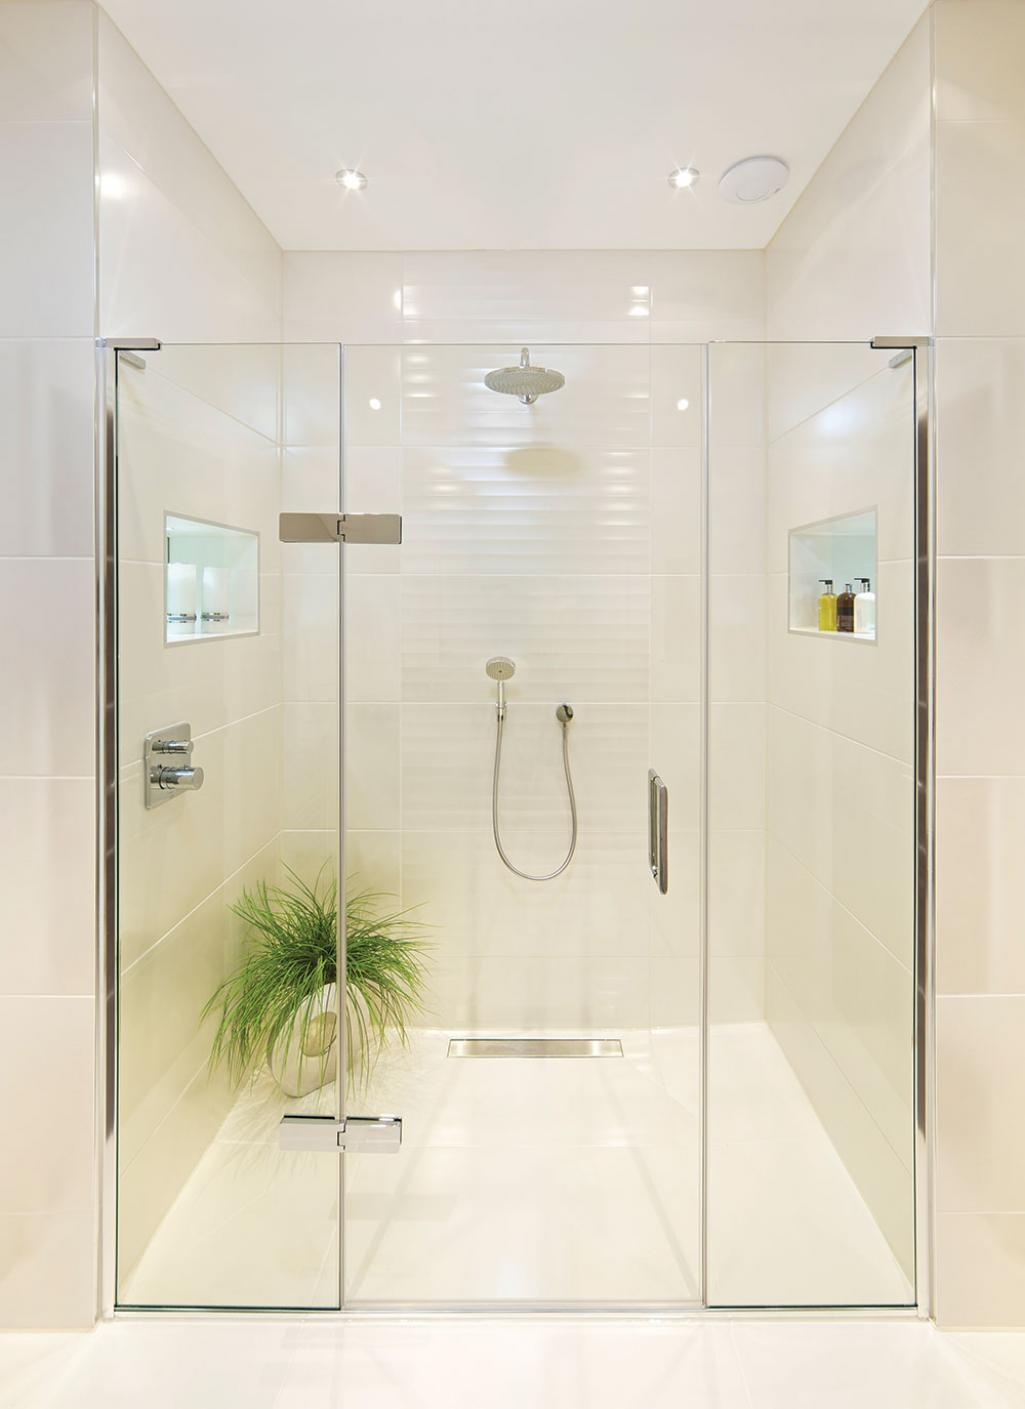 Kitchen Receptacles, Shower Lighting And More | Electrical ...